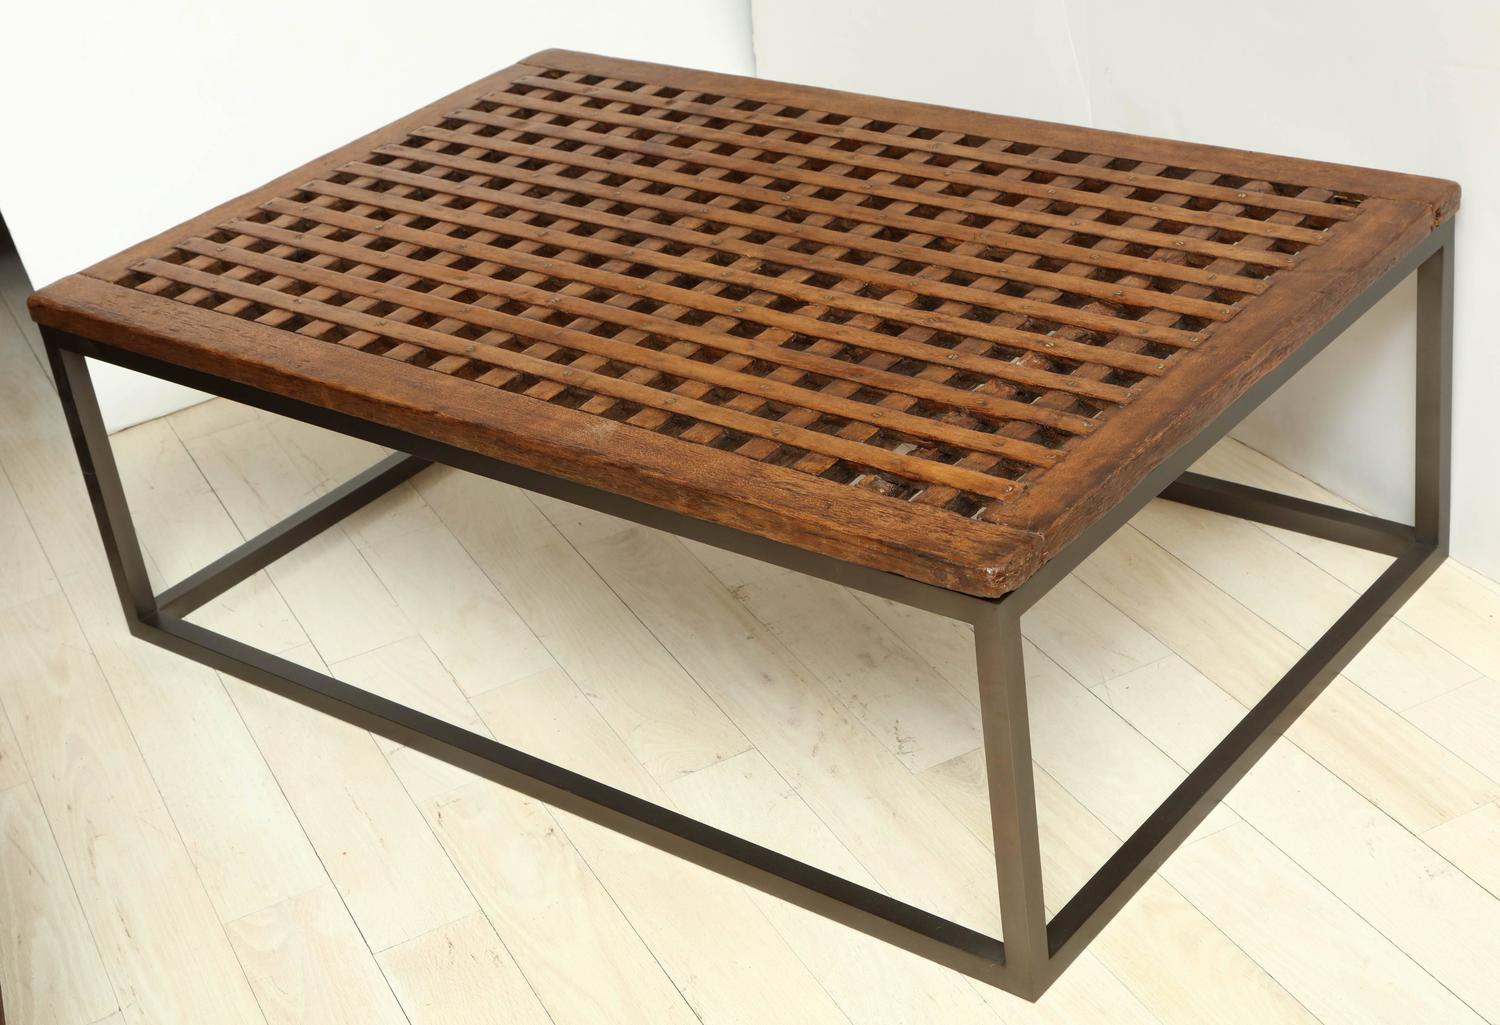 Custom Wood And Steel Rectangular Coffee Table With Slatted Top Circa 1960s At 1stdibs